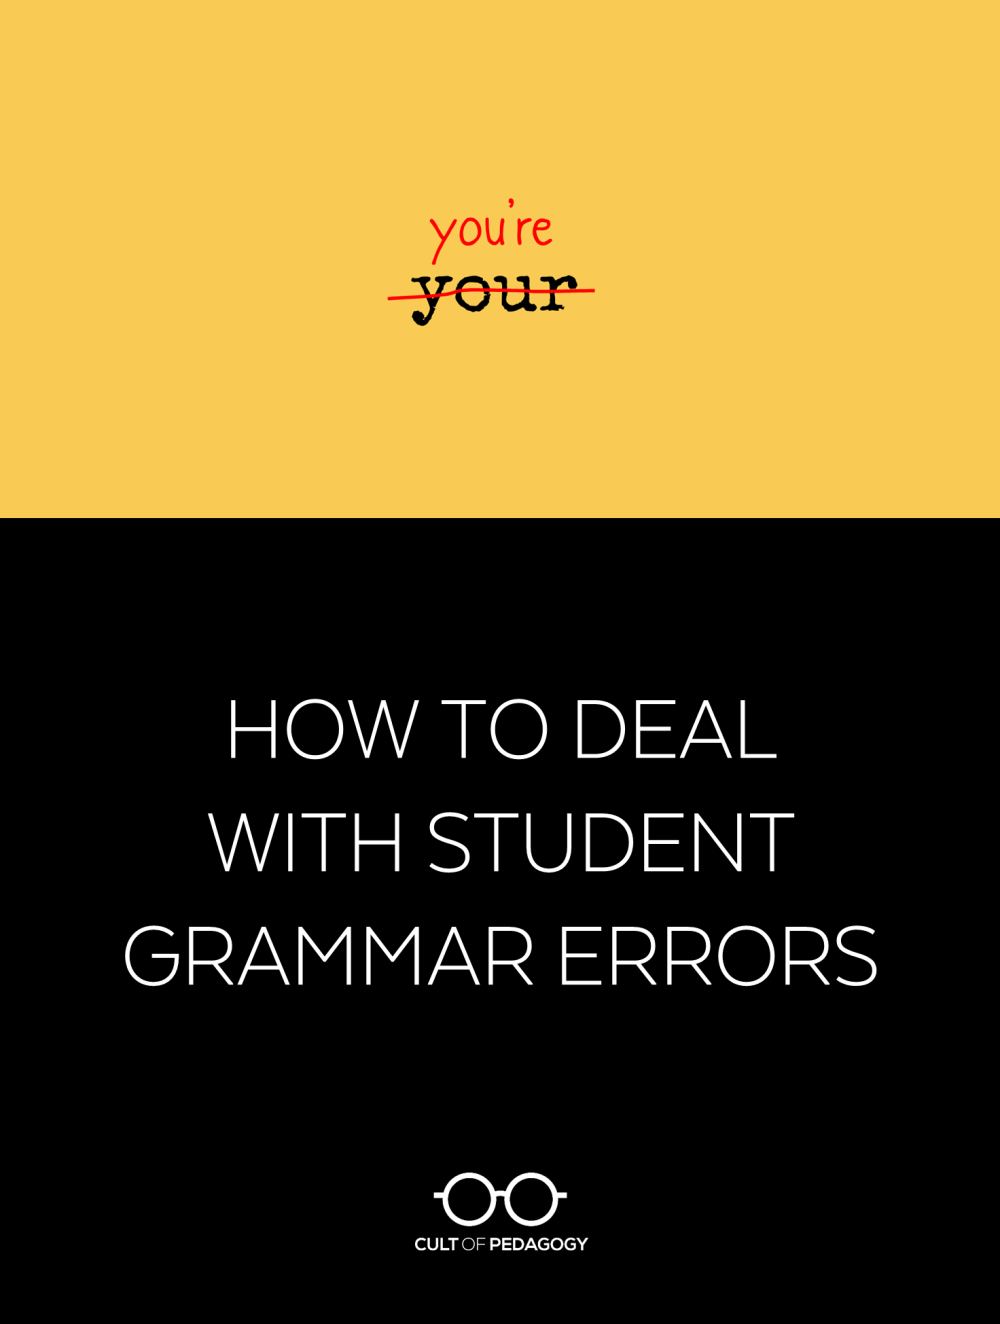 medium resolution of How to Deal with Student Grammar Errors   Cult of Pedagogy